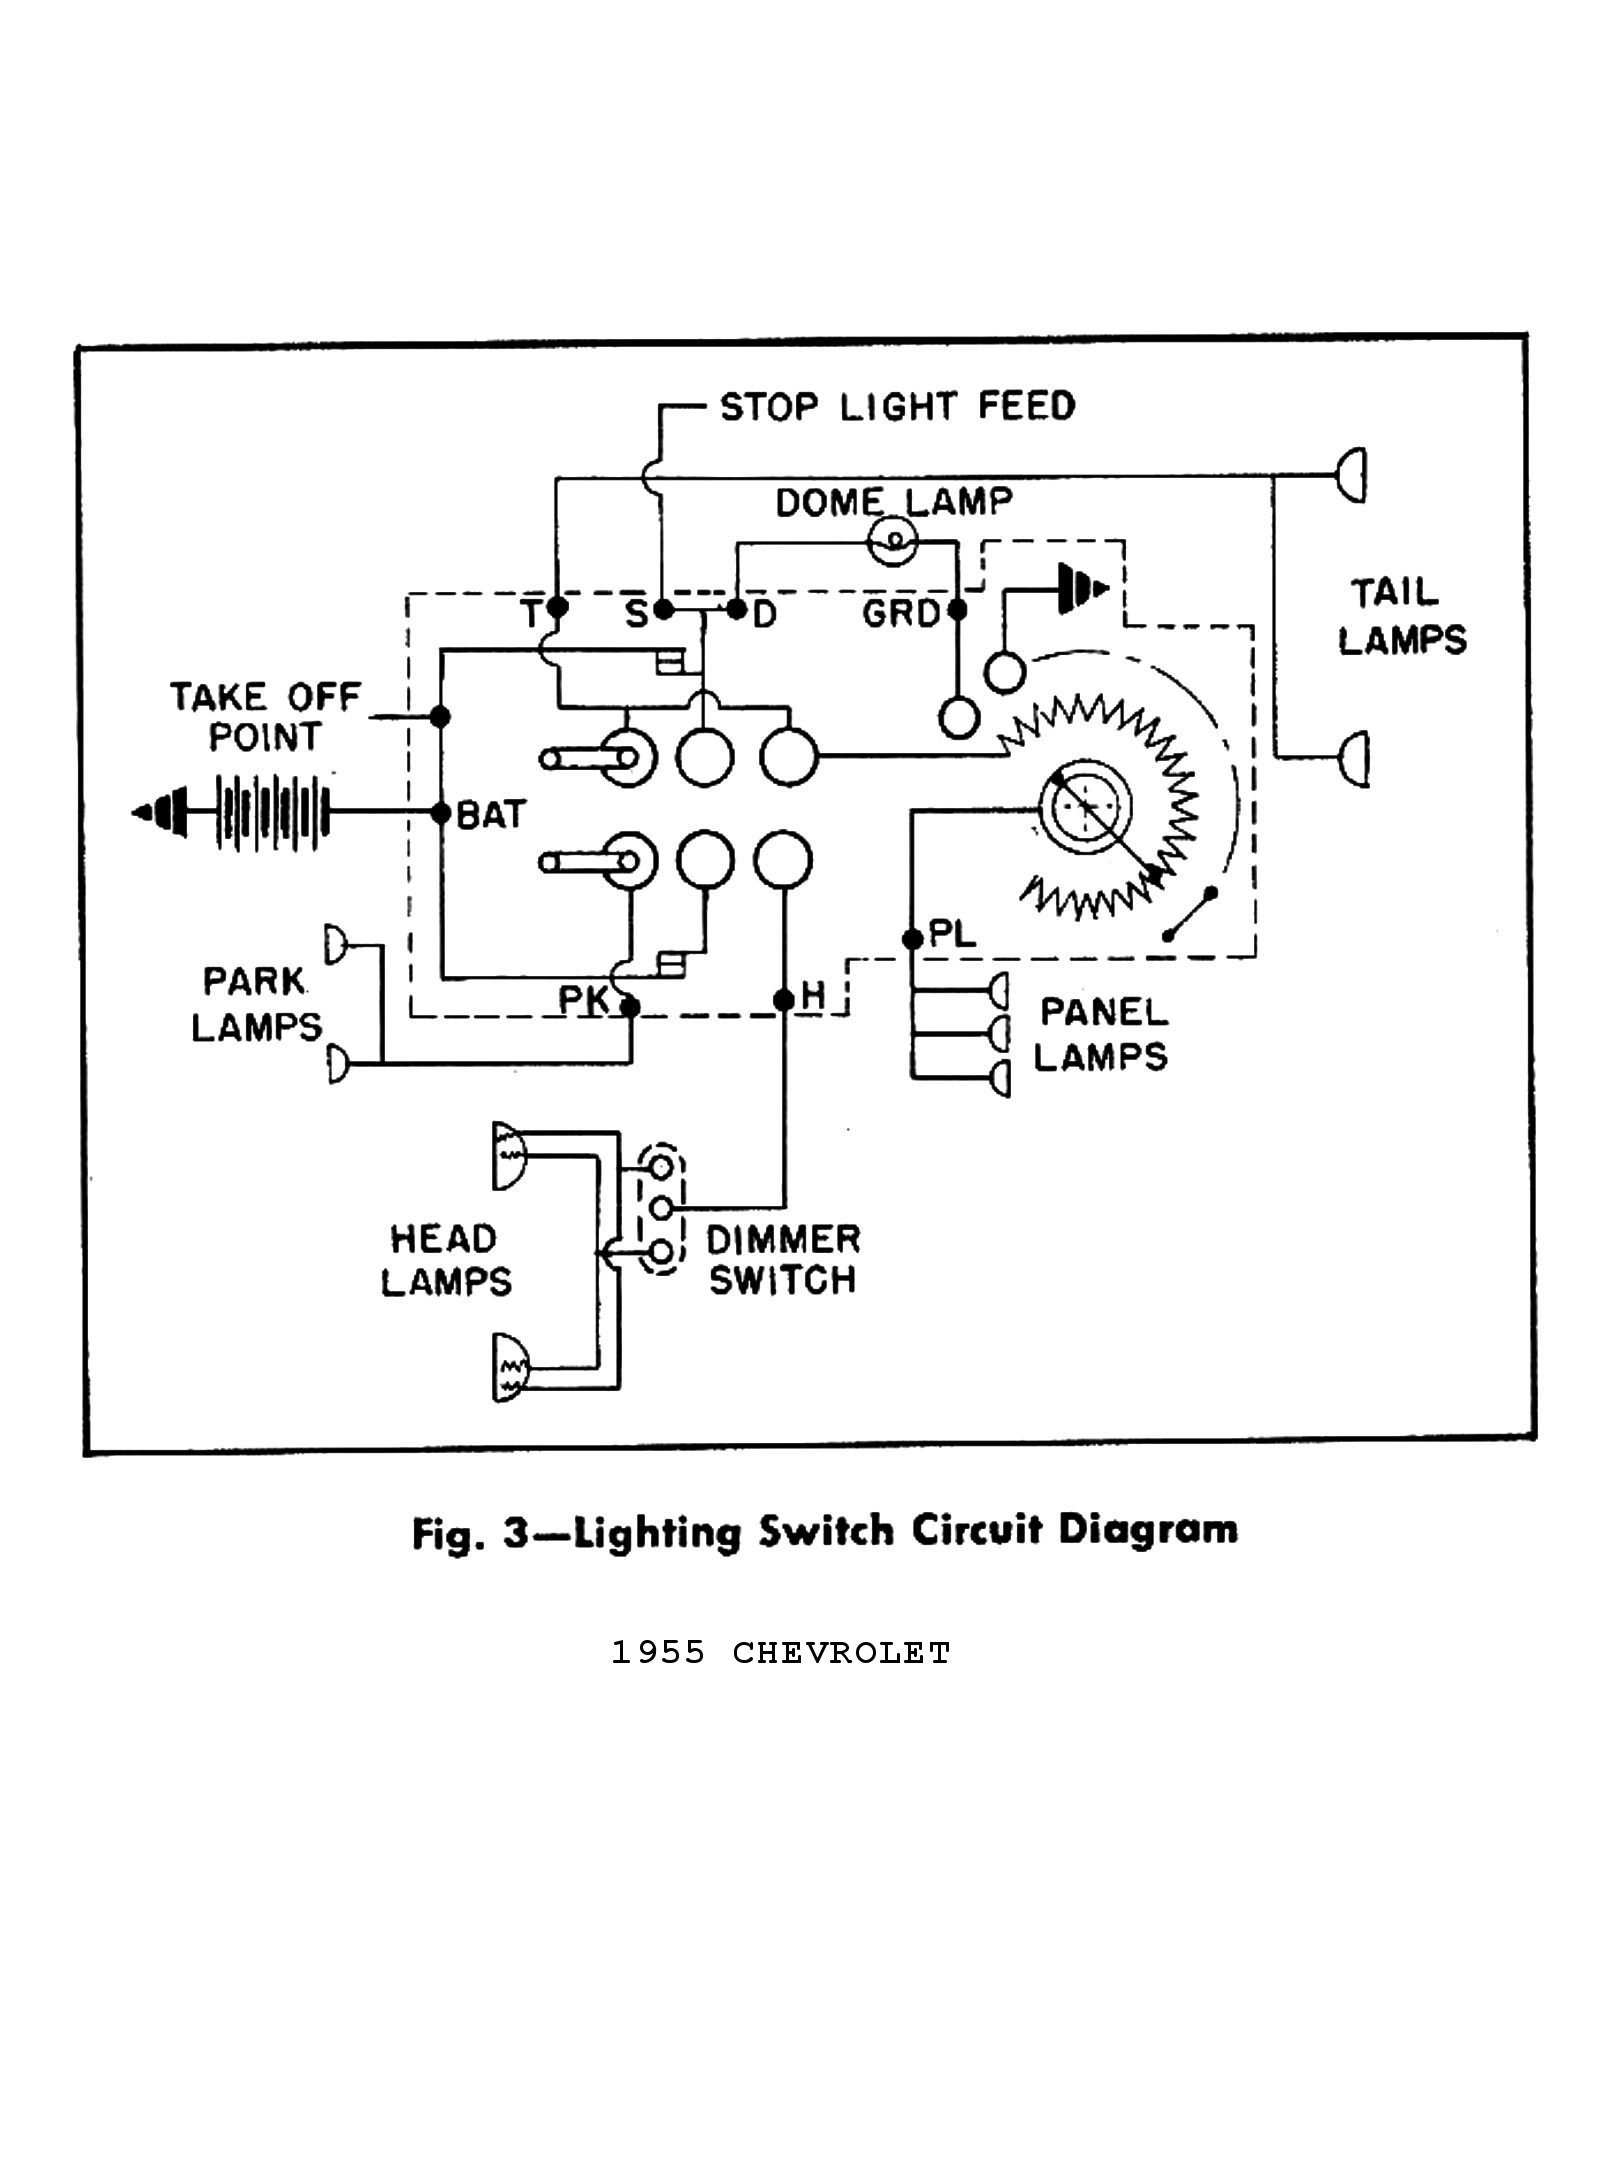 55ctsm1203 chevy wiring diagrams 1956 chevy ignition switch wiring diagram at honlapkeszites.co